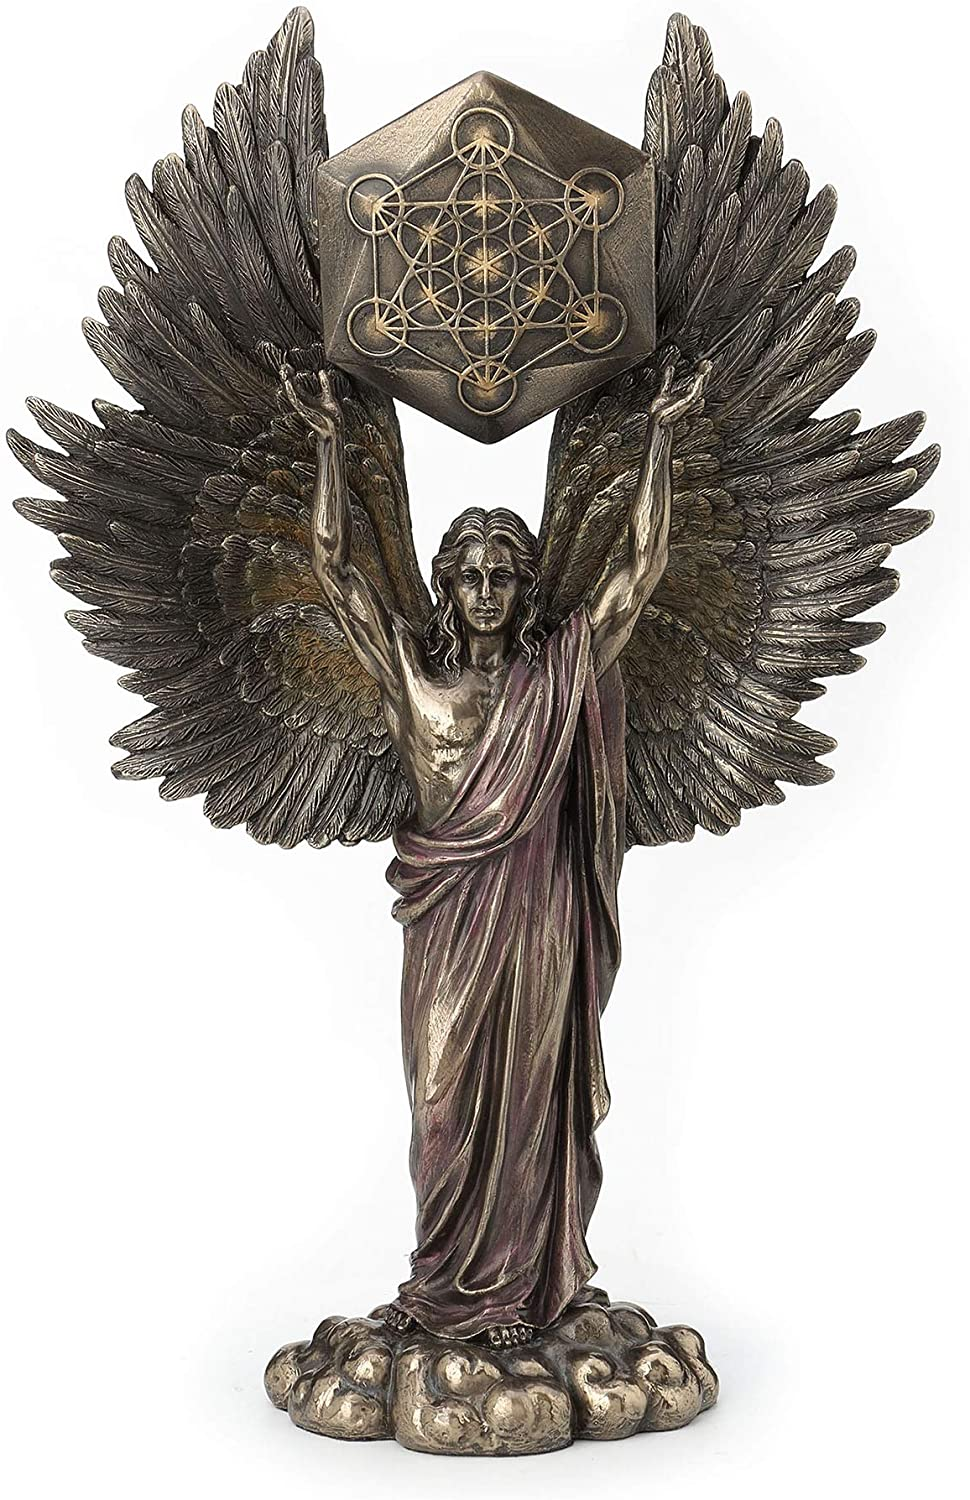 Veronese Design Archangel Metatron Holding Tucson Mall Cu Sacred Up New products, world's highest quality popular! Geometry